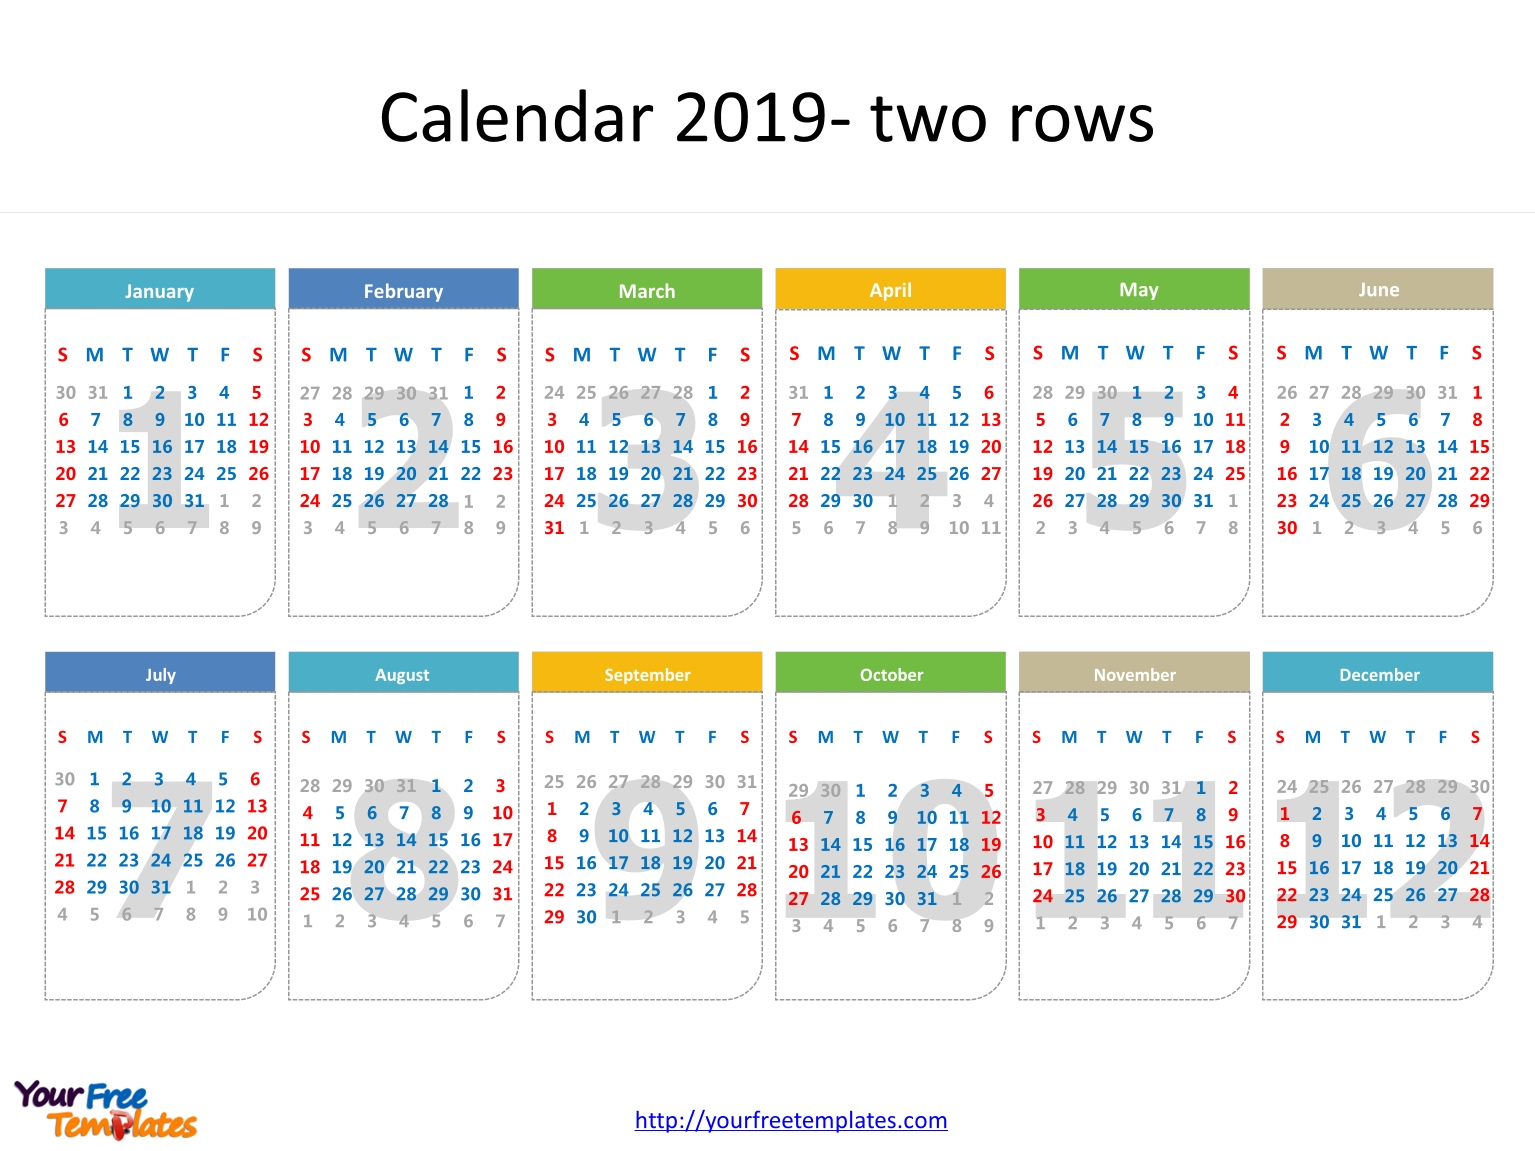 Printable Calendar 2019 Template - Free Powerpoint Templates Calendar 2019 Outline